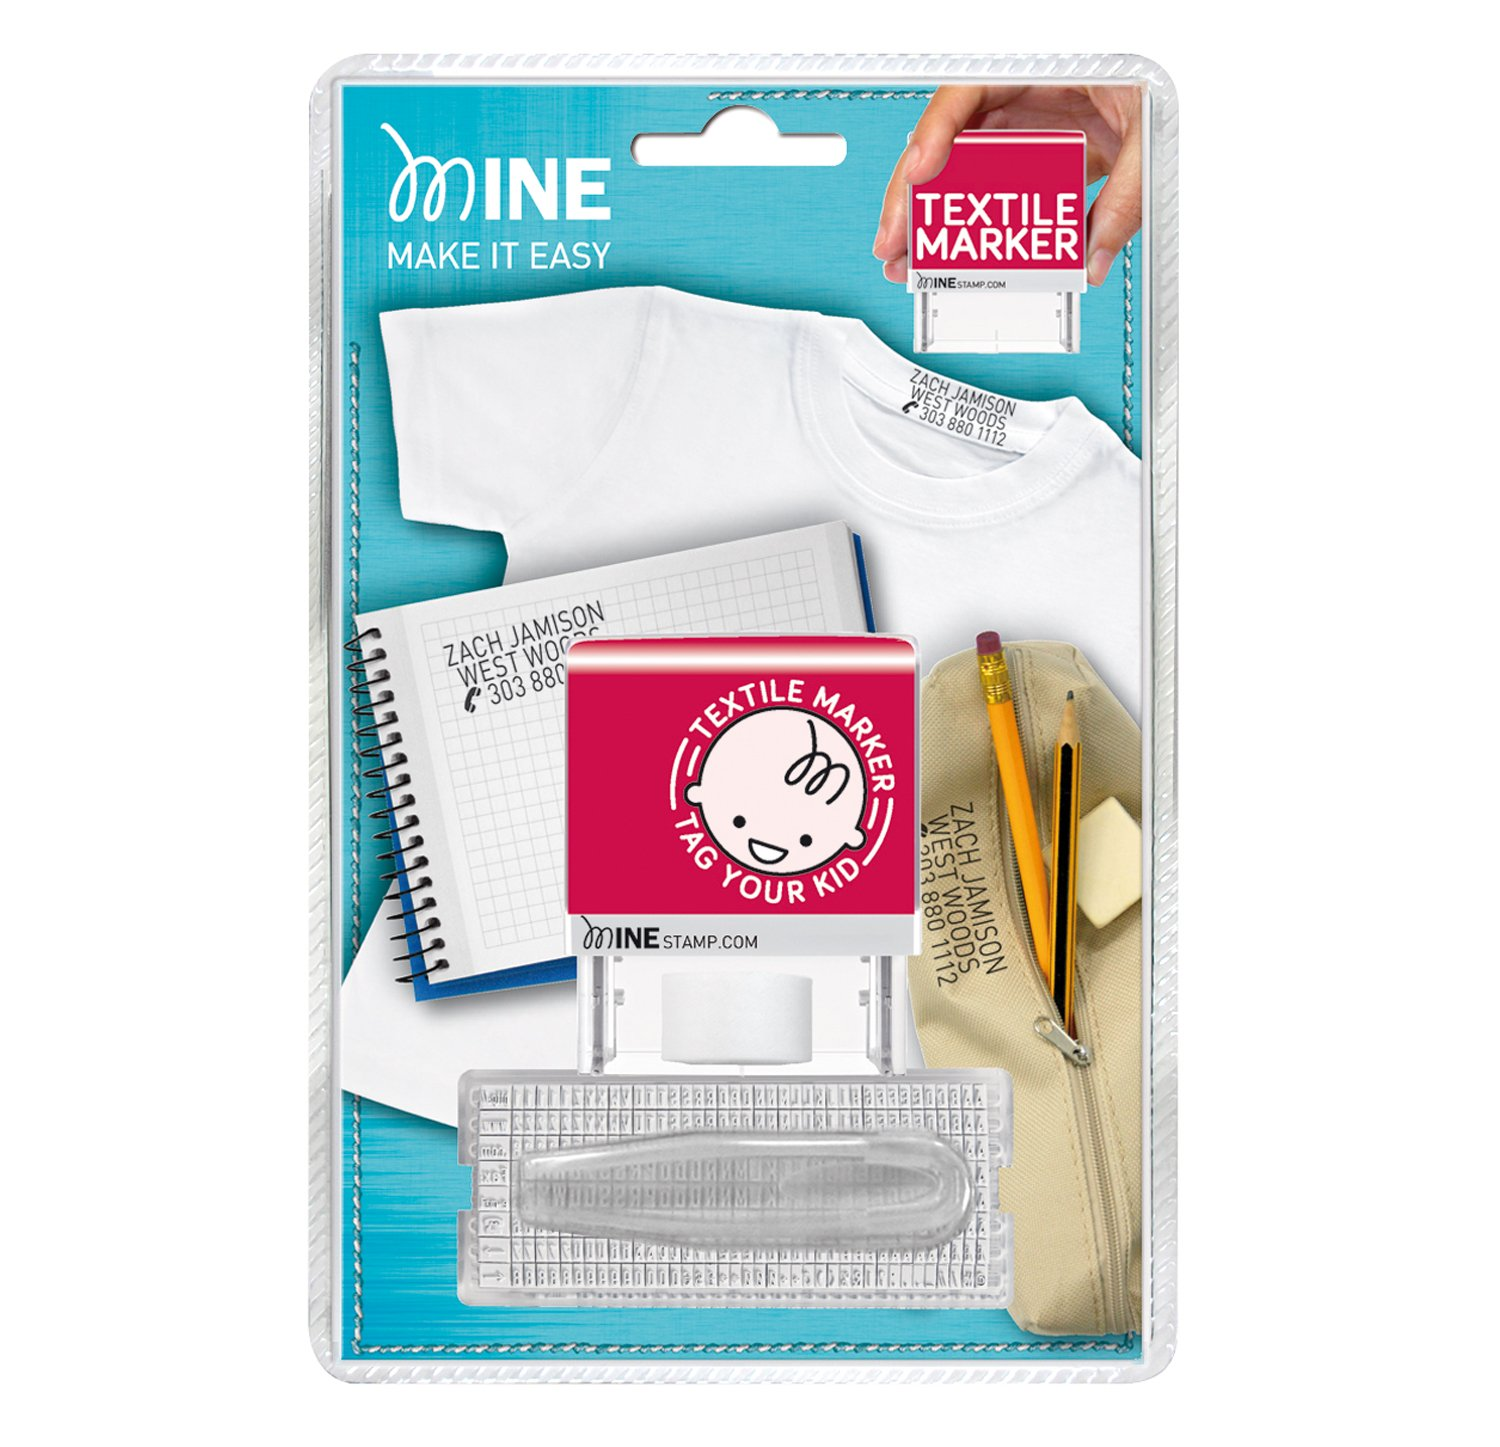 MINE STAMP Marcador de Ropa y Libros MINESTAMP 20/1SET